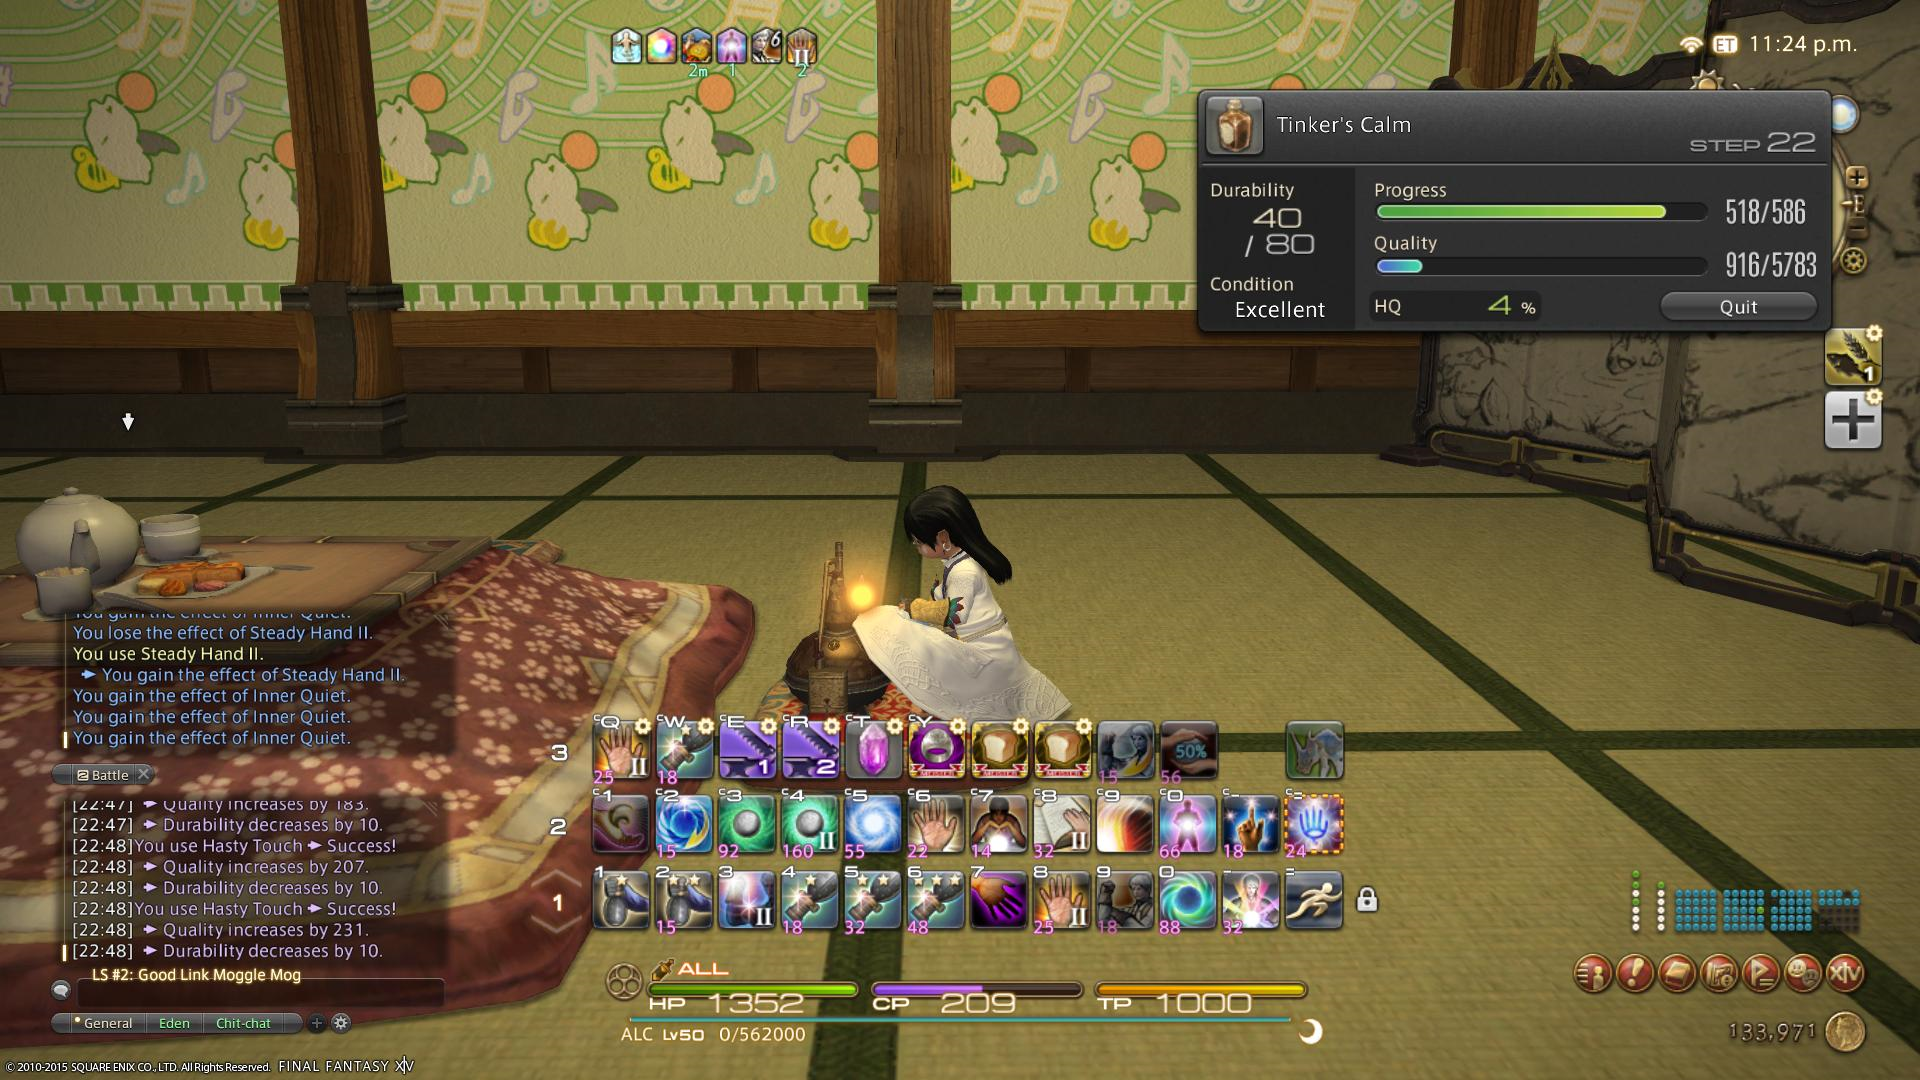 FF14 HOW TO USE BYREGOTS BLESSING